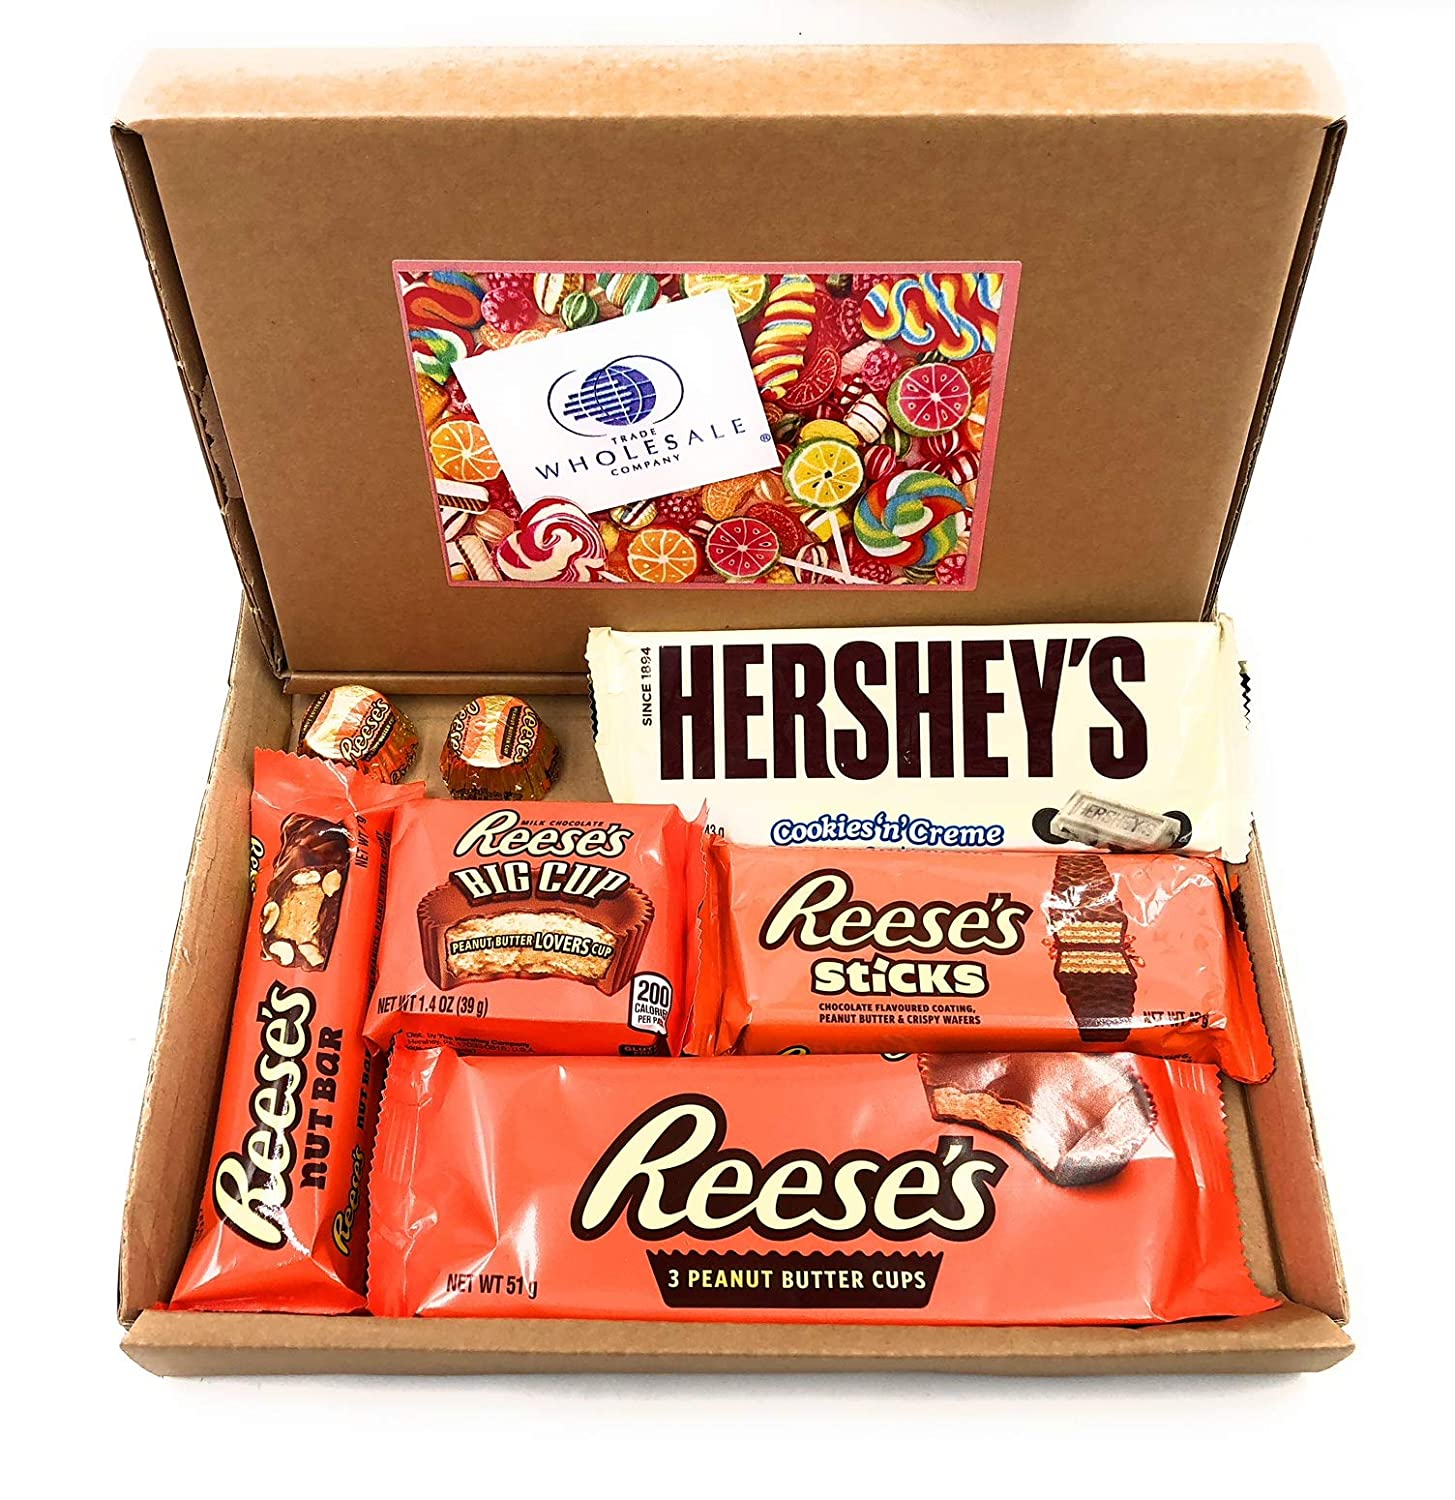 MISTERY BOX REESESS Y/O HERSHEYS OF AMERICAN SNACKS CHOCOLATE SABOR AMERICANO REGALO PERFECTO IDEA PEANUT BUTTER PEANUTS CHOCOLATE KUTTER CUP AMERICAN BOX ...